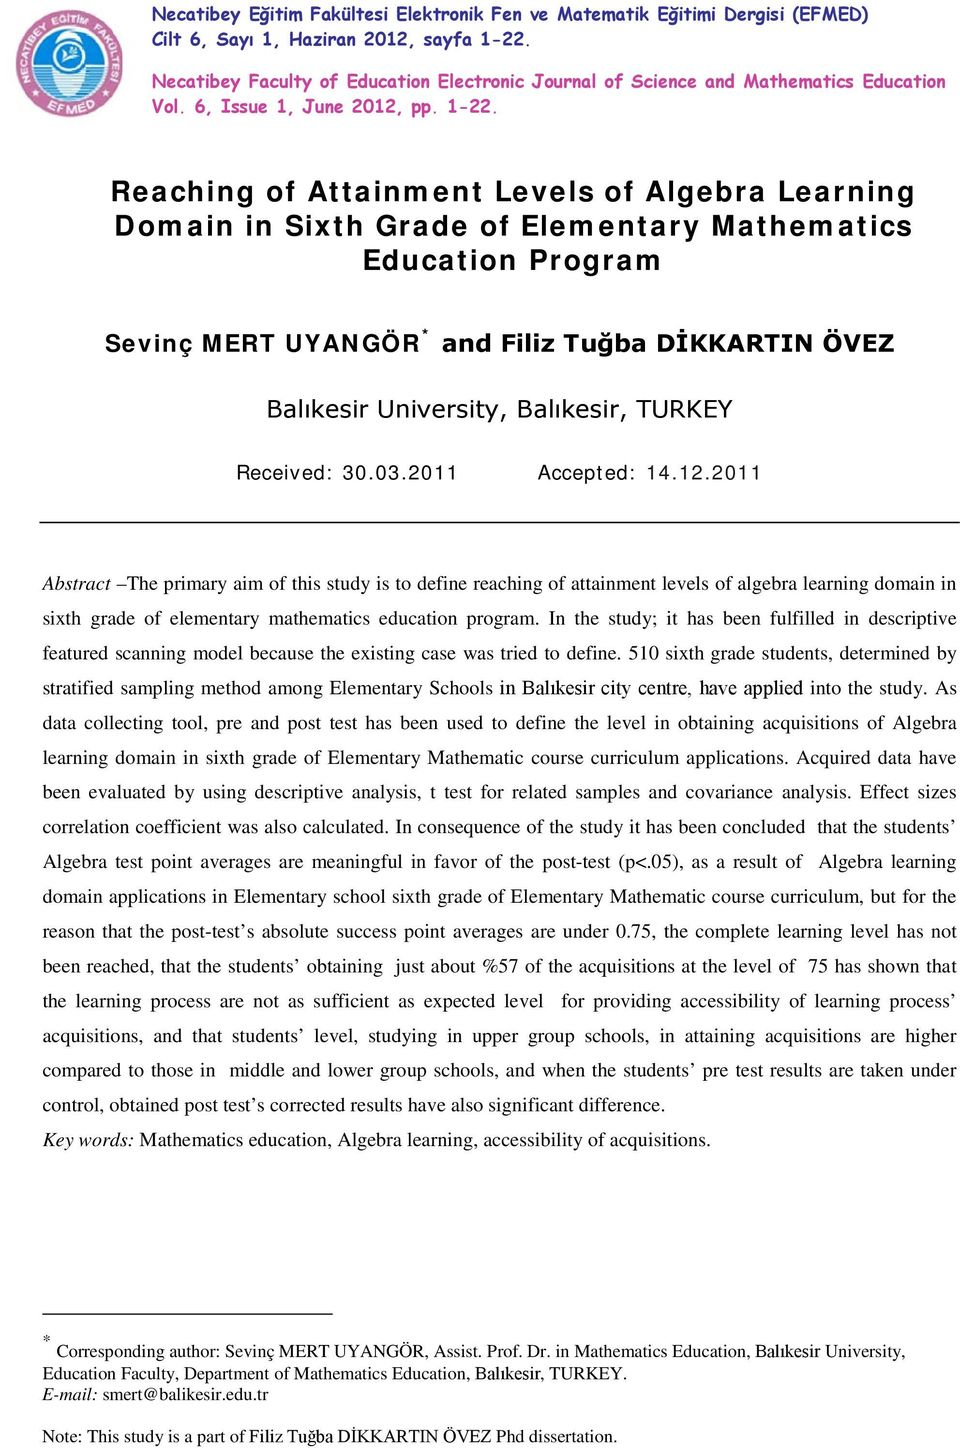 Reaching of Attainment Levels of Algebra Learning Domain in Sixth Grade of Elementary Mathematics Education Program Sevinç MERT UYANGÖR * and Filiz Tuğba DİKKARTIN ÖVEZ Balıkesir University,